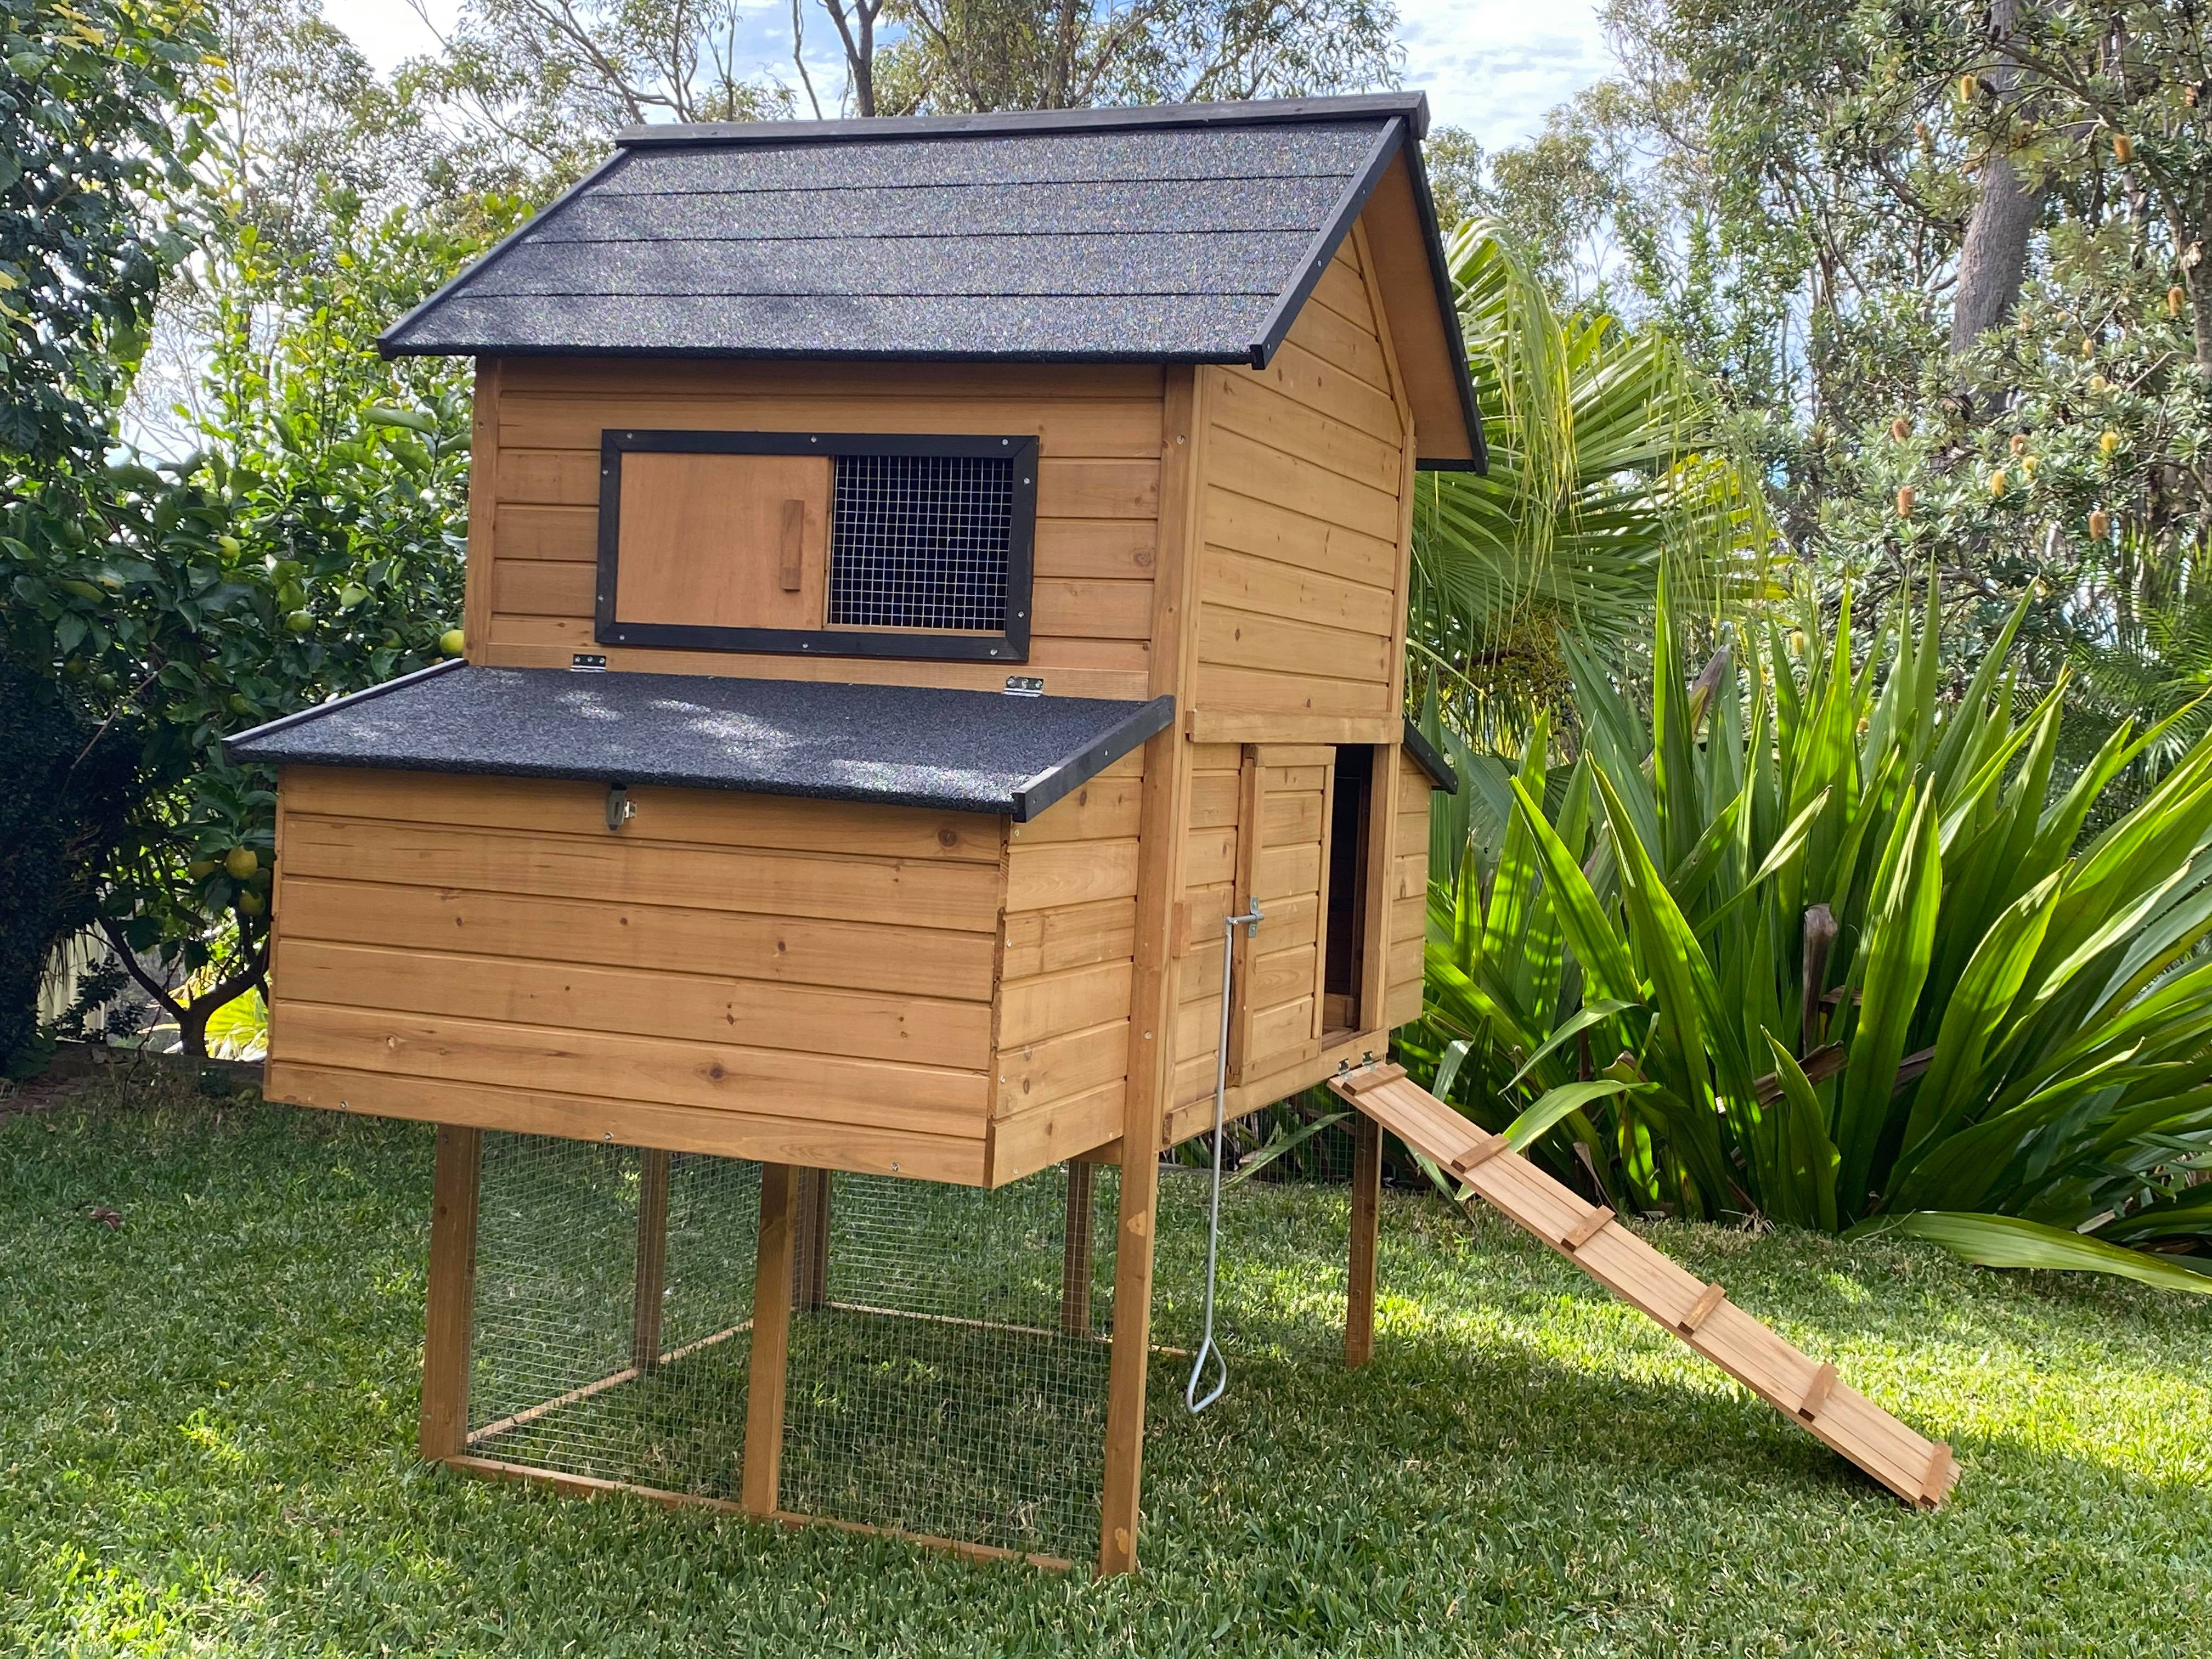 Cabana Chicken Coop with nesting box and ramp gallery image